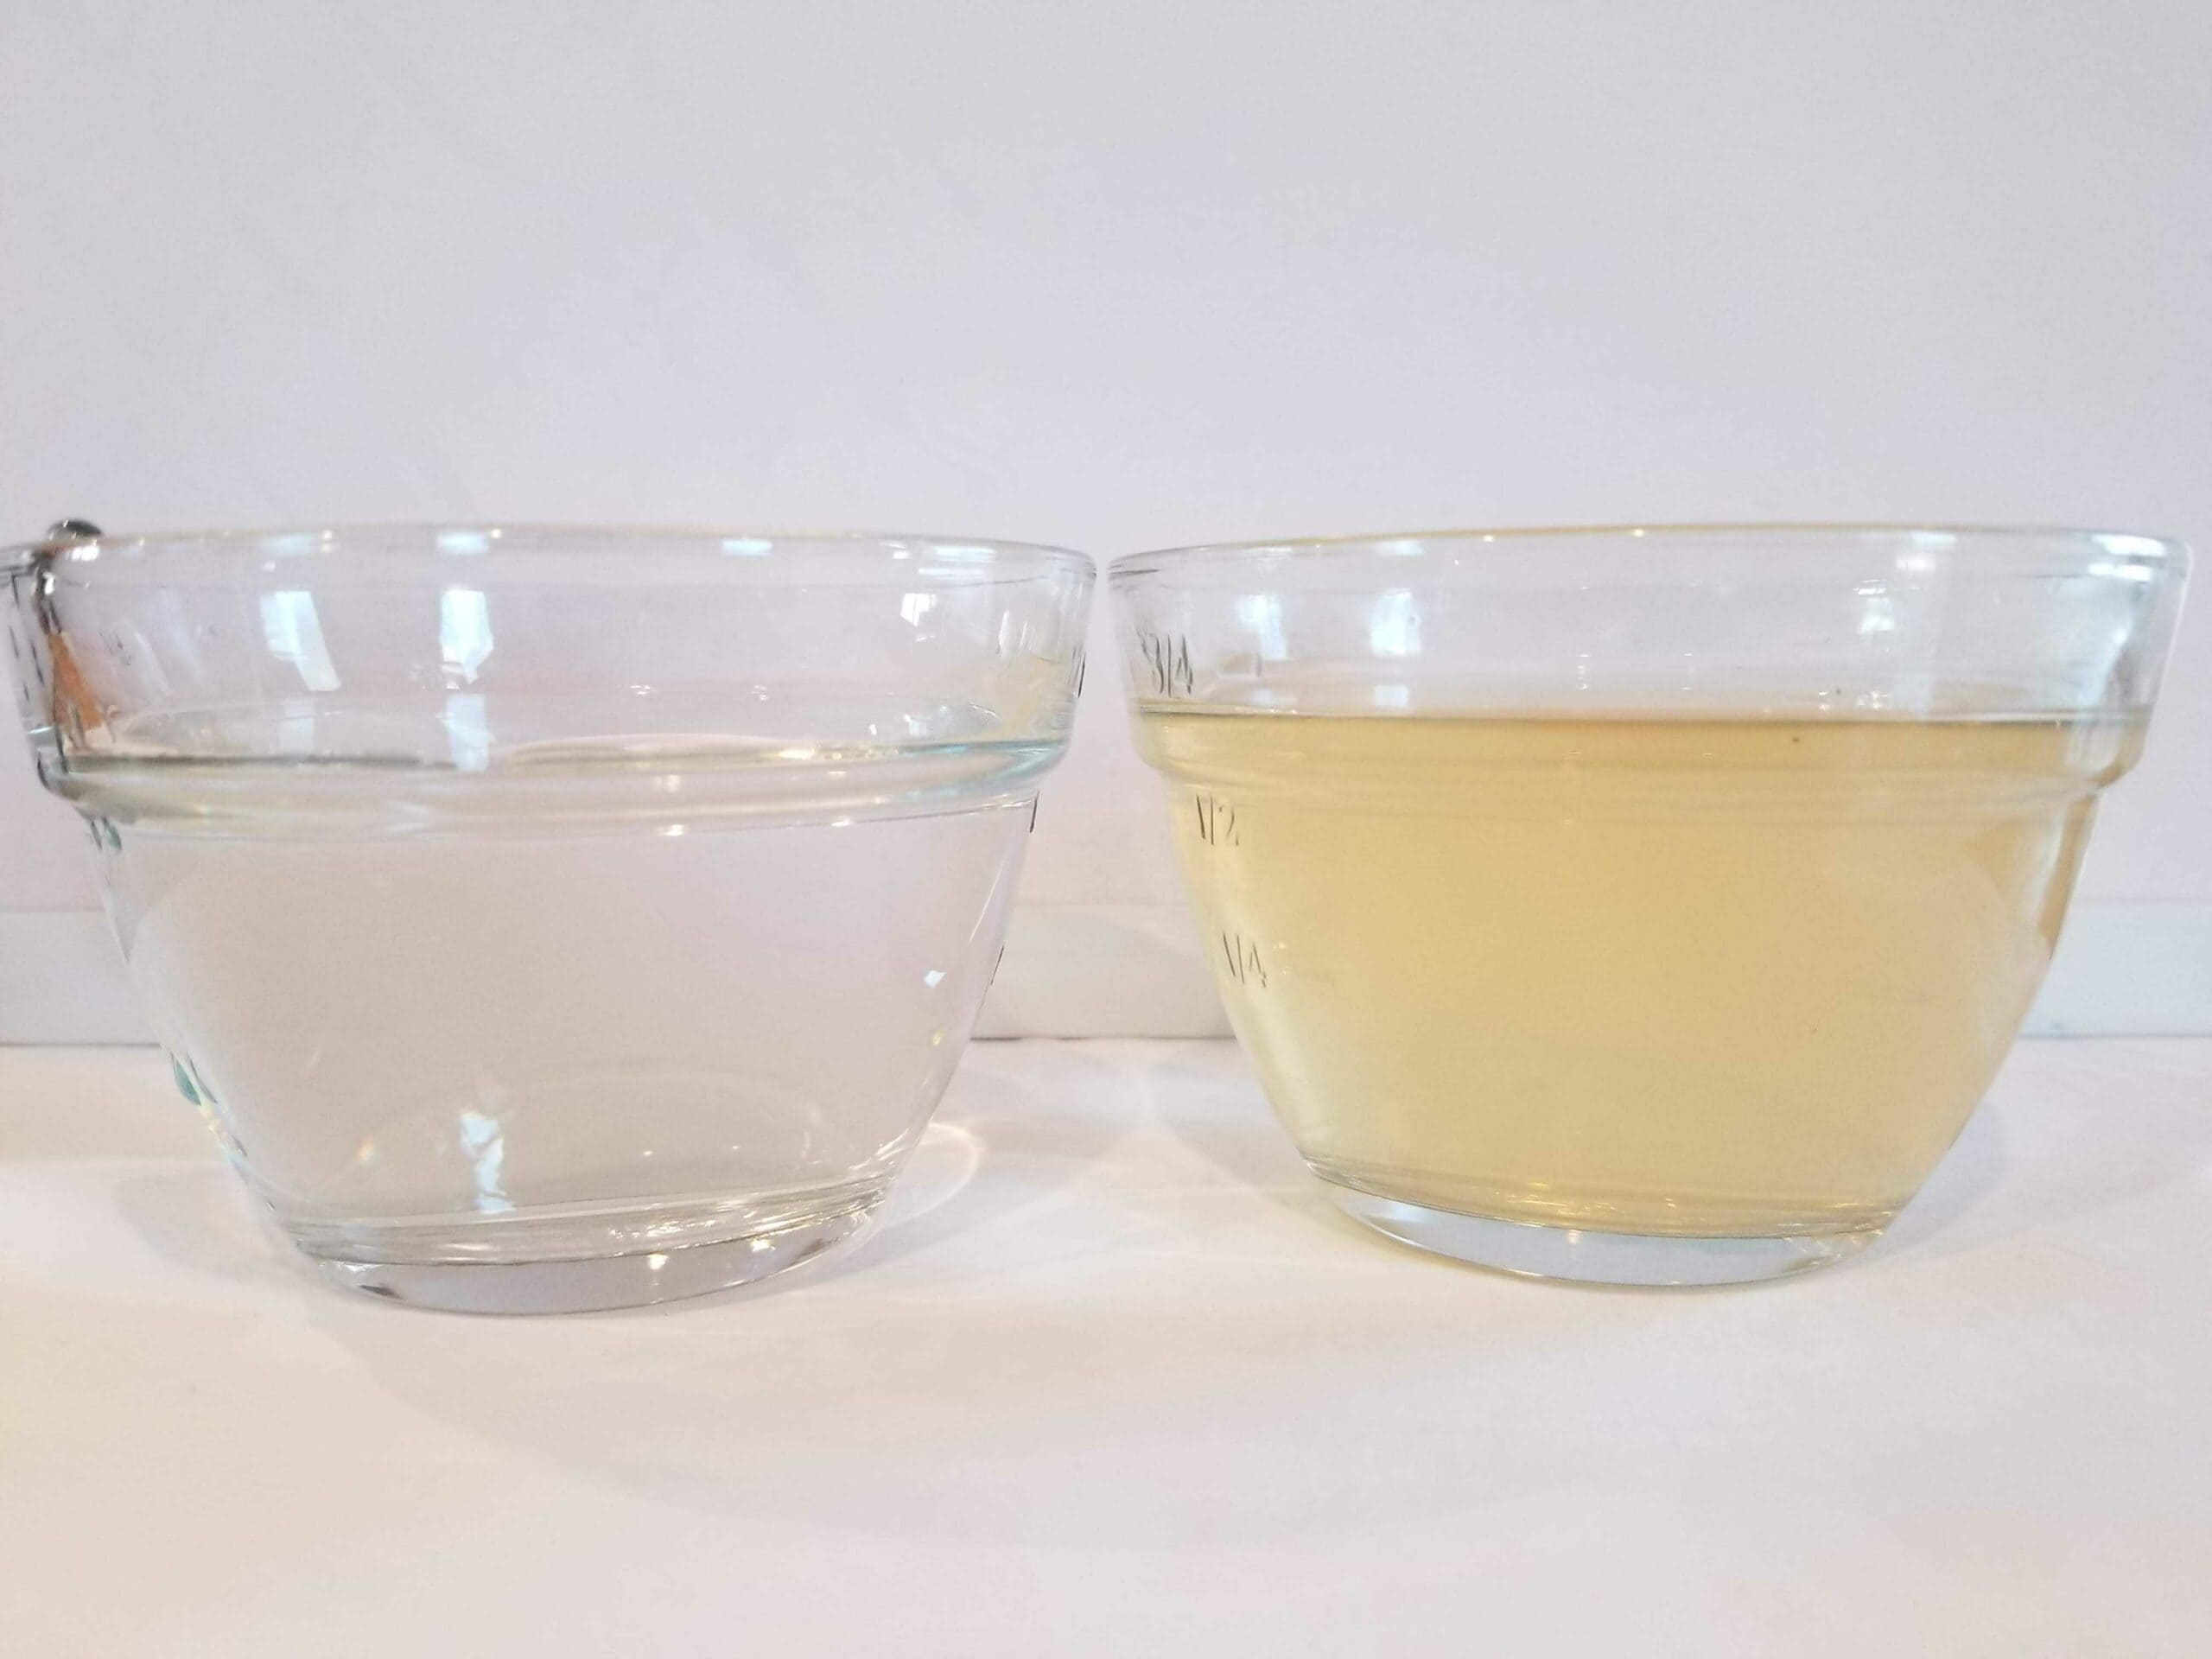 before and after water sample